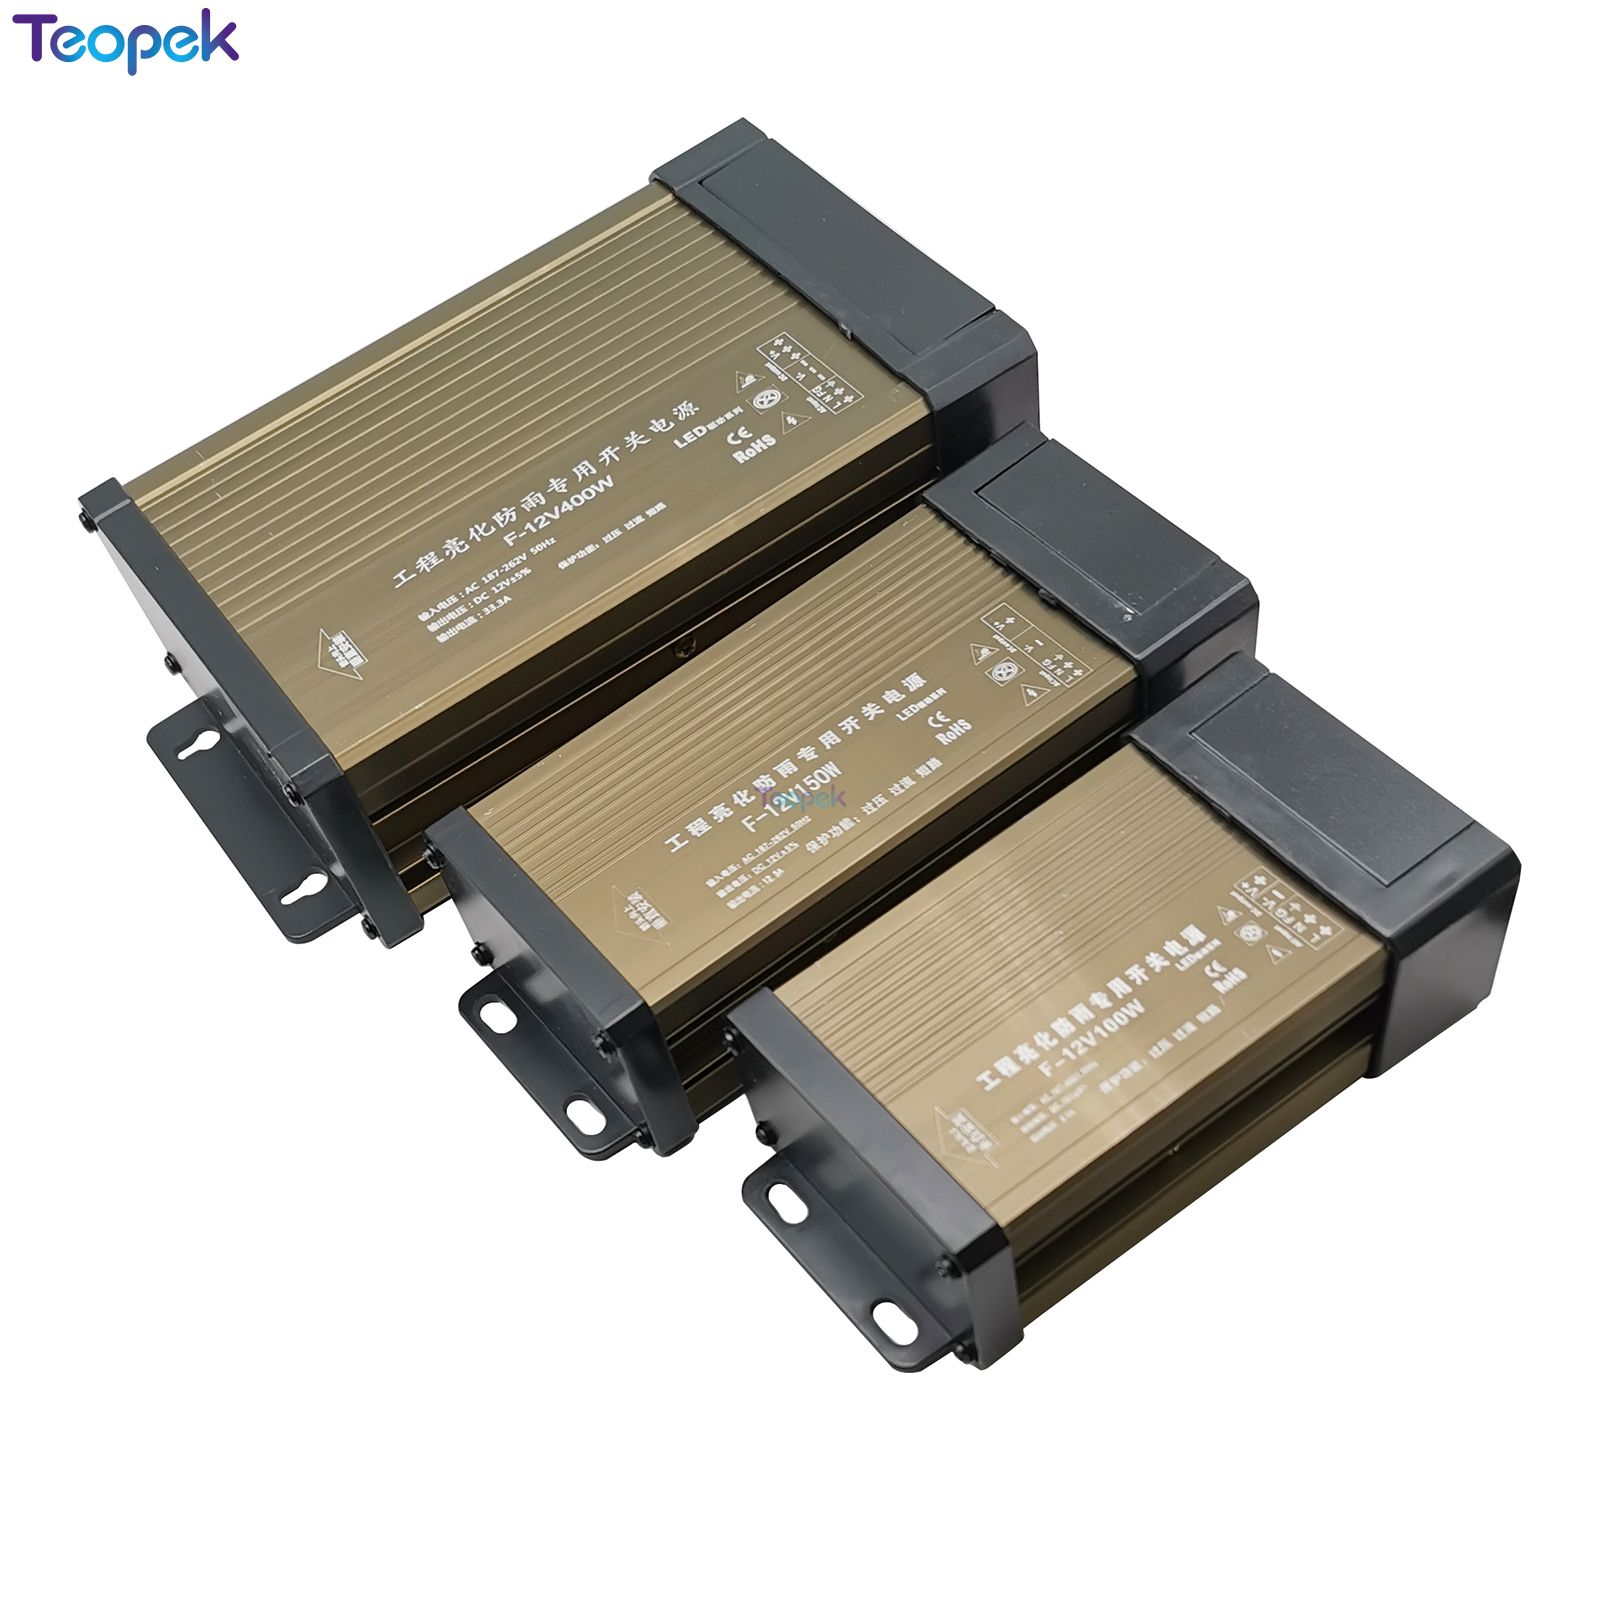 Rainproof Switching Power Supply IP43 DC12V 60W 100W 150W 200W 300W 400W 12V LED Outdoor Transformer DC 12V